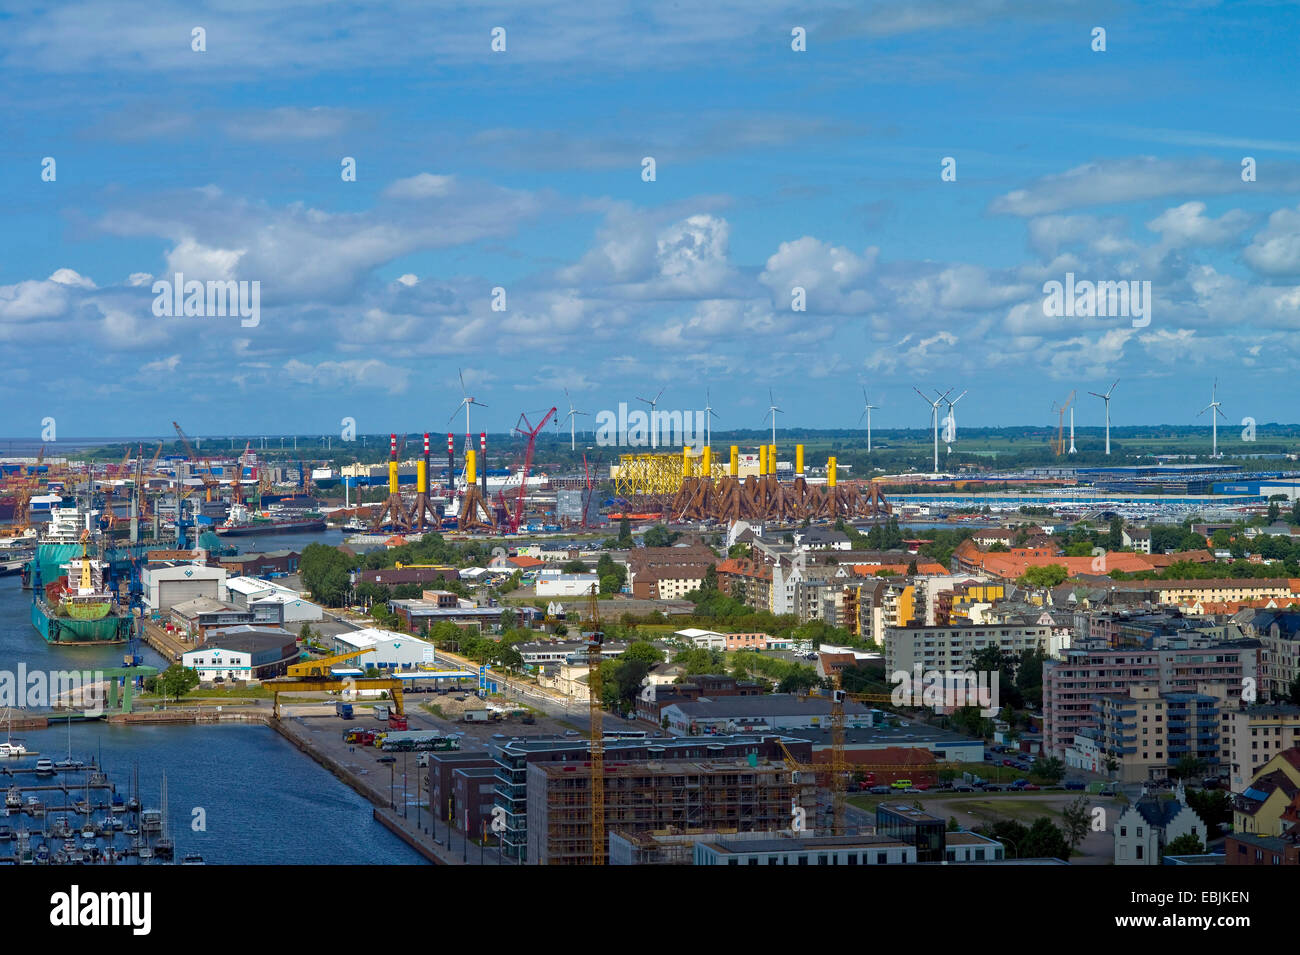 panoramic view over the harbours with tripods for windmills at the container port, Germany, Bremerhaven - Stock Image